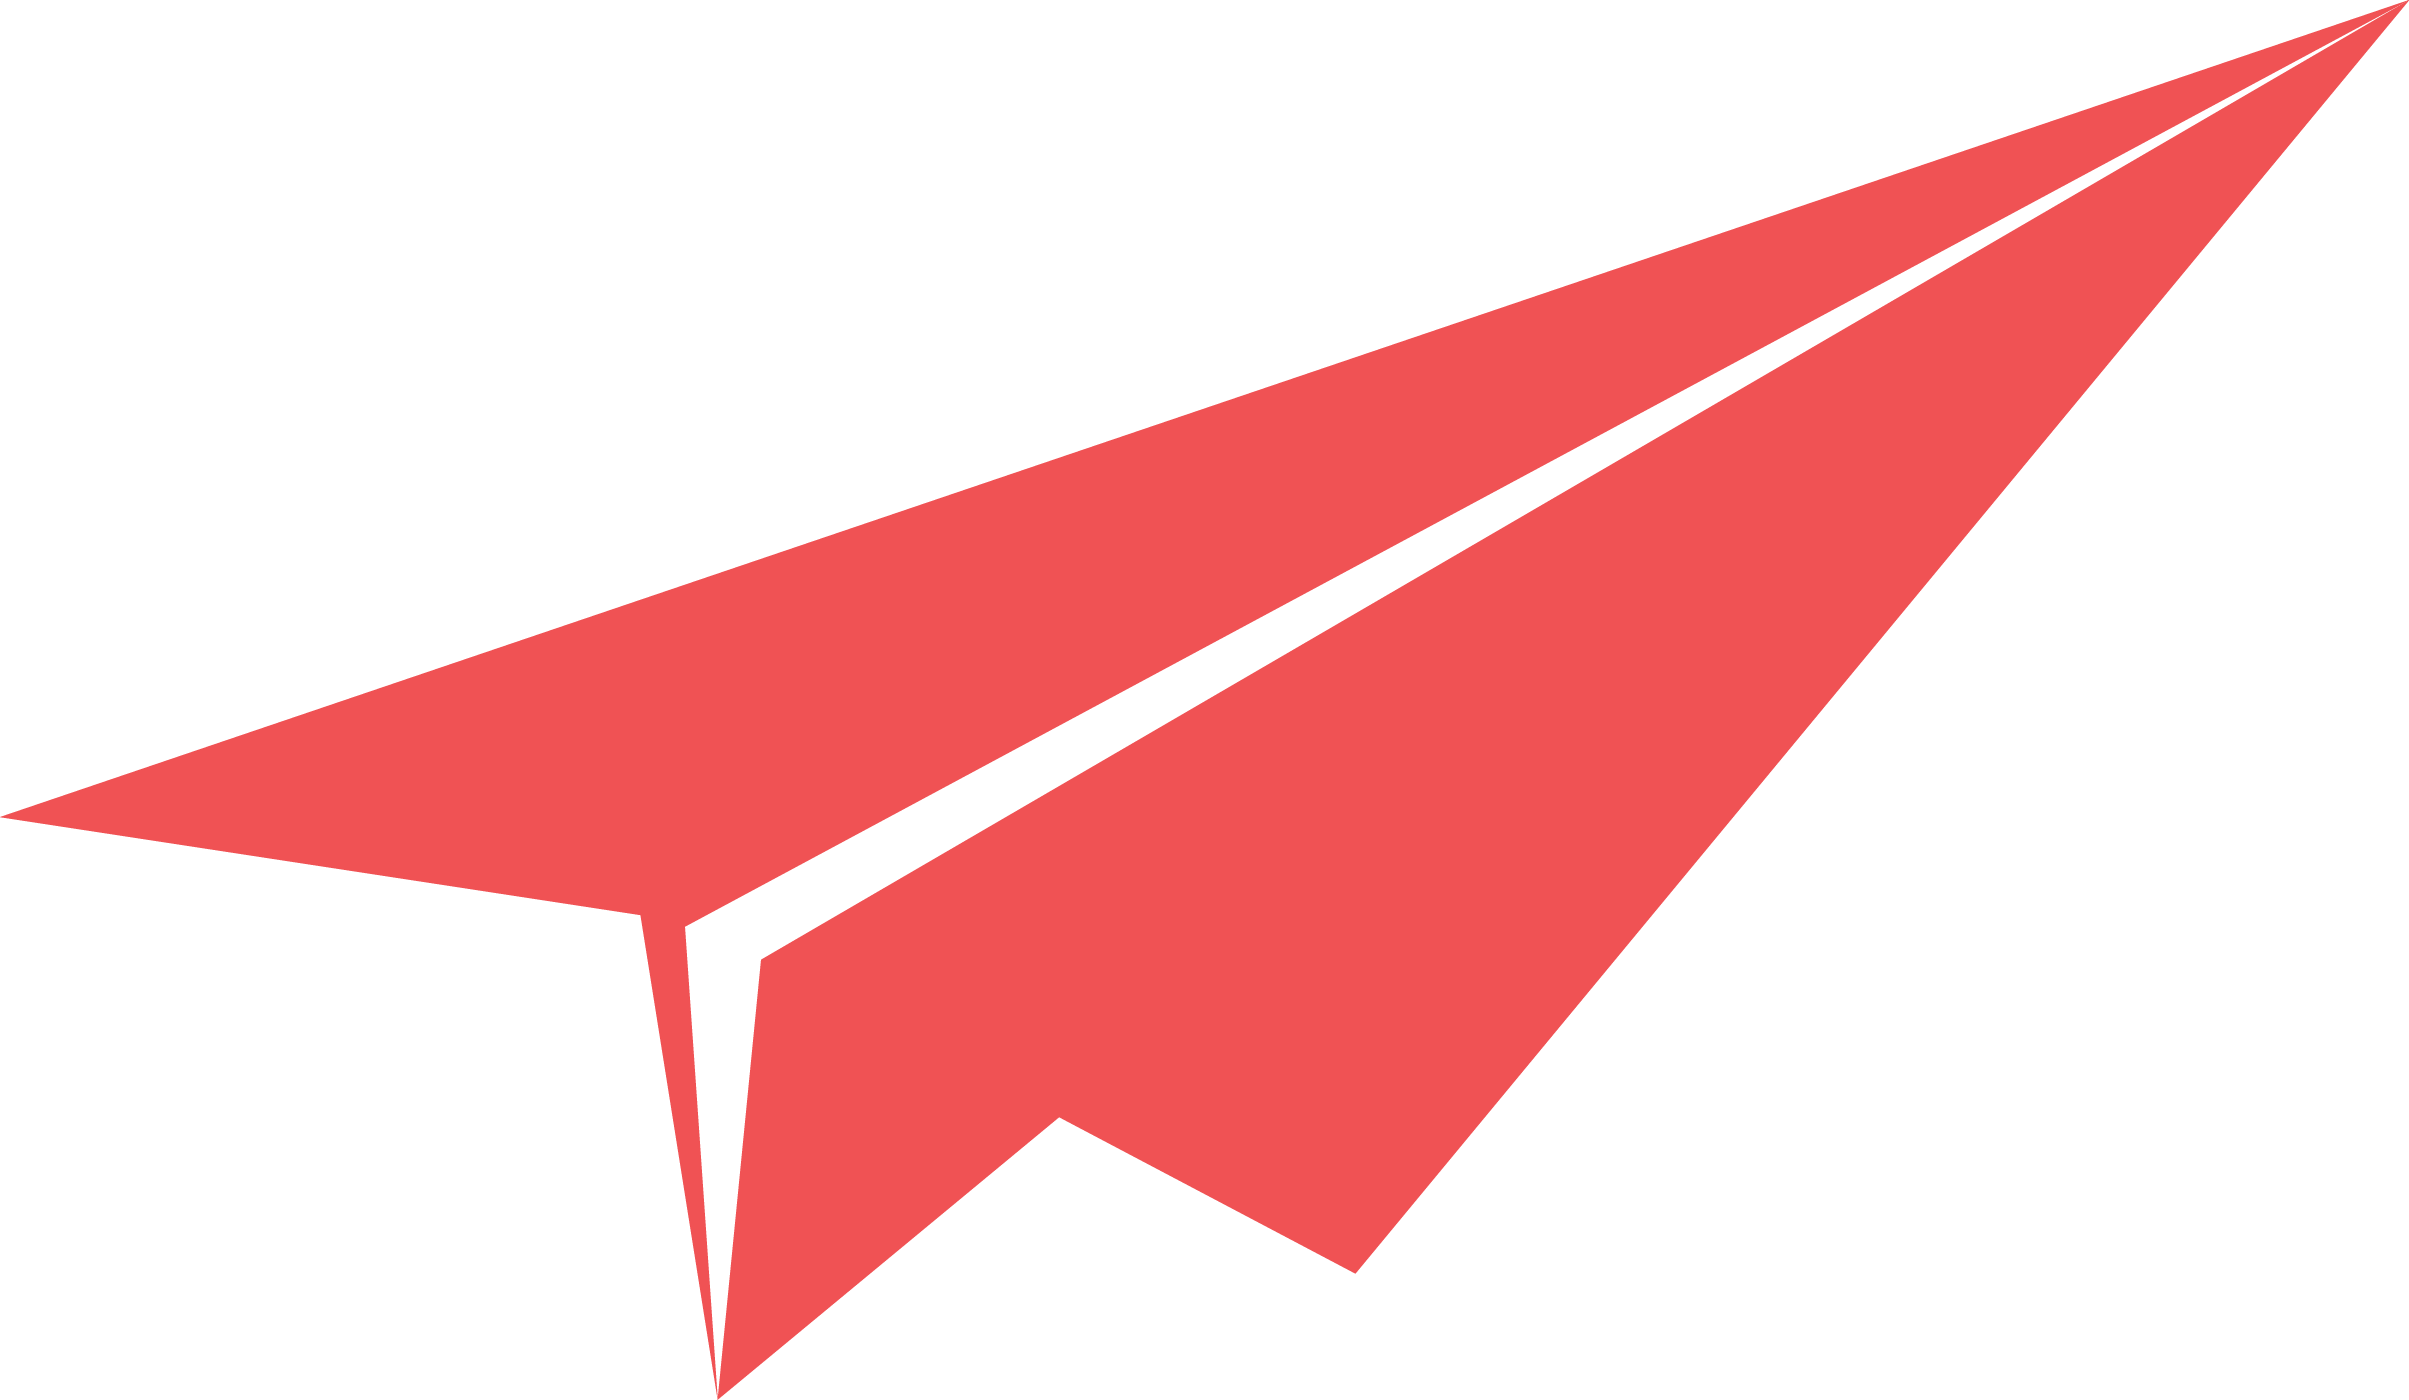 Dart clipart red. Paper plane png image